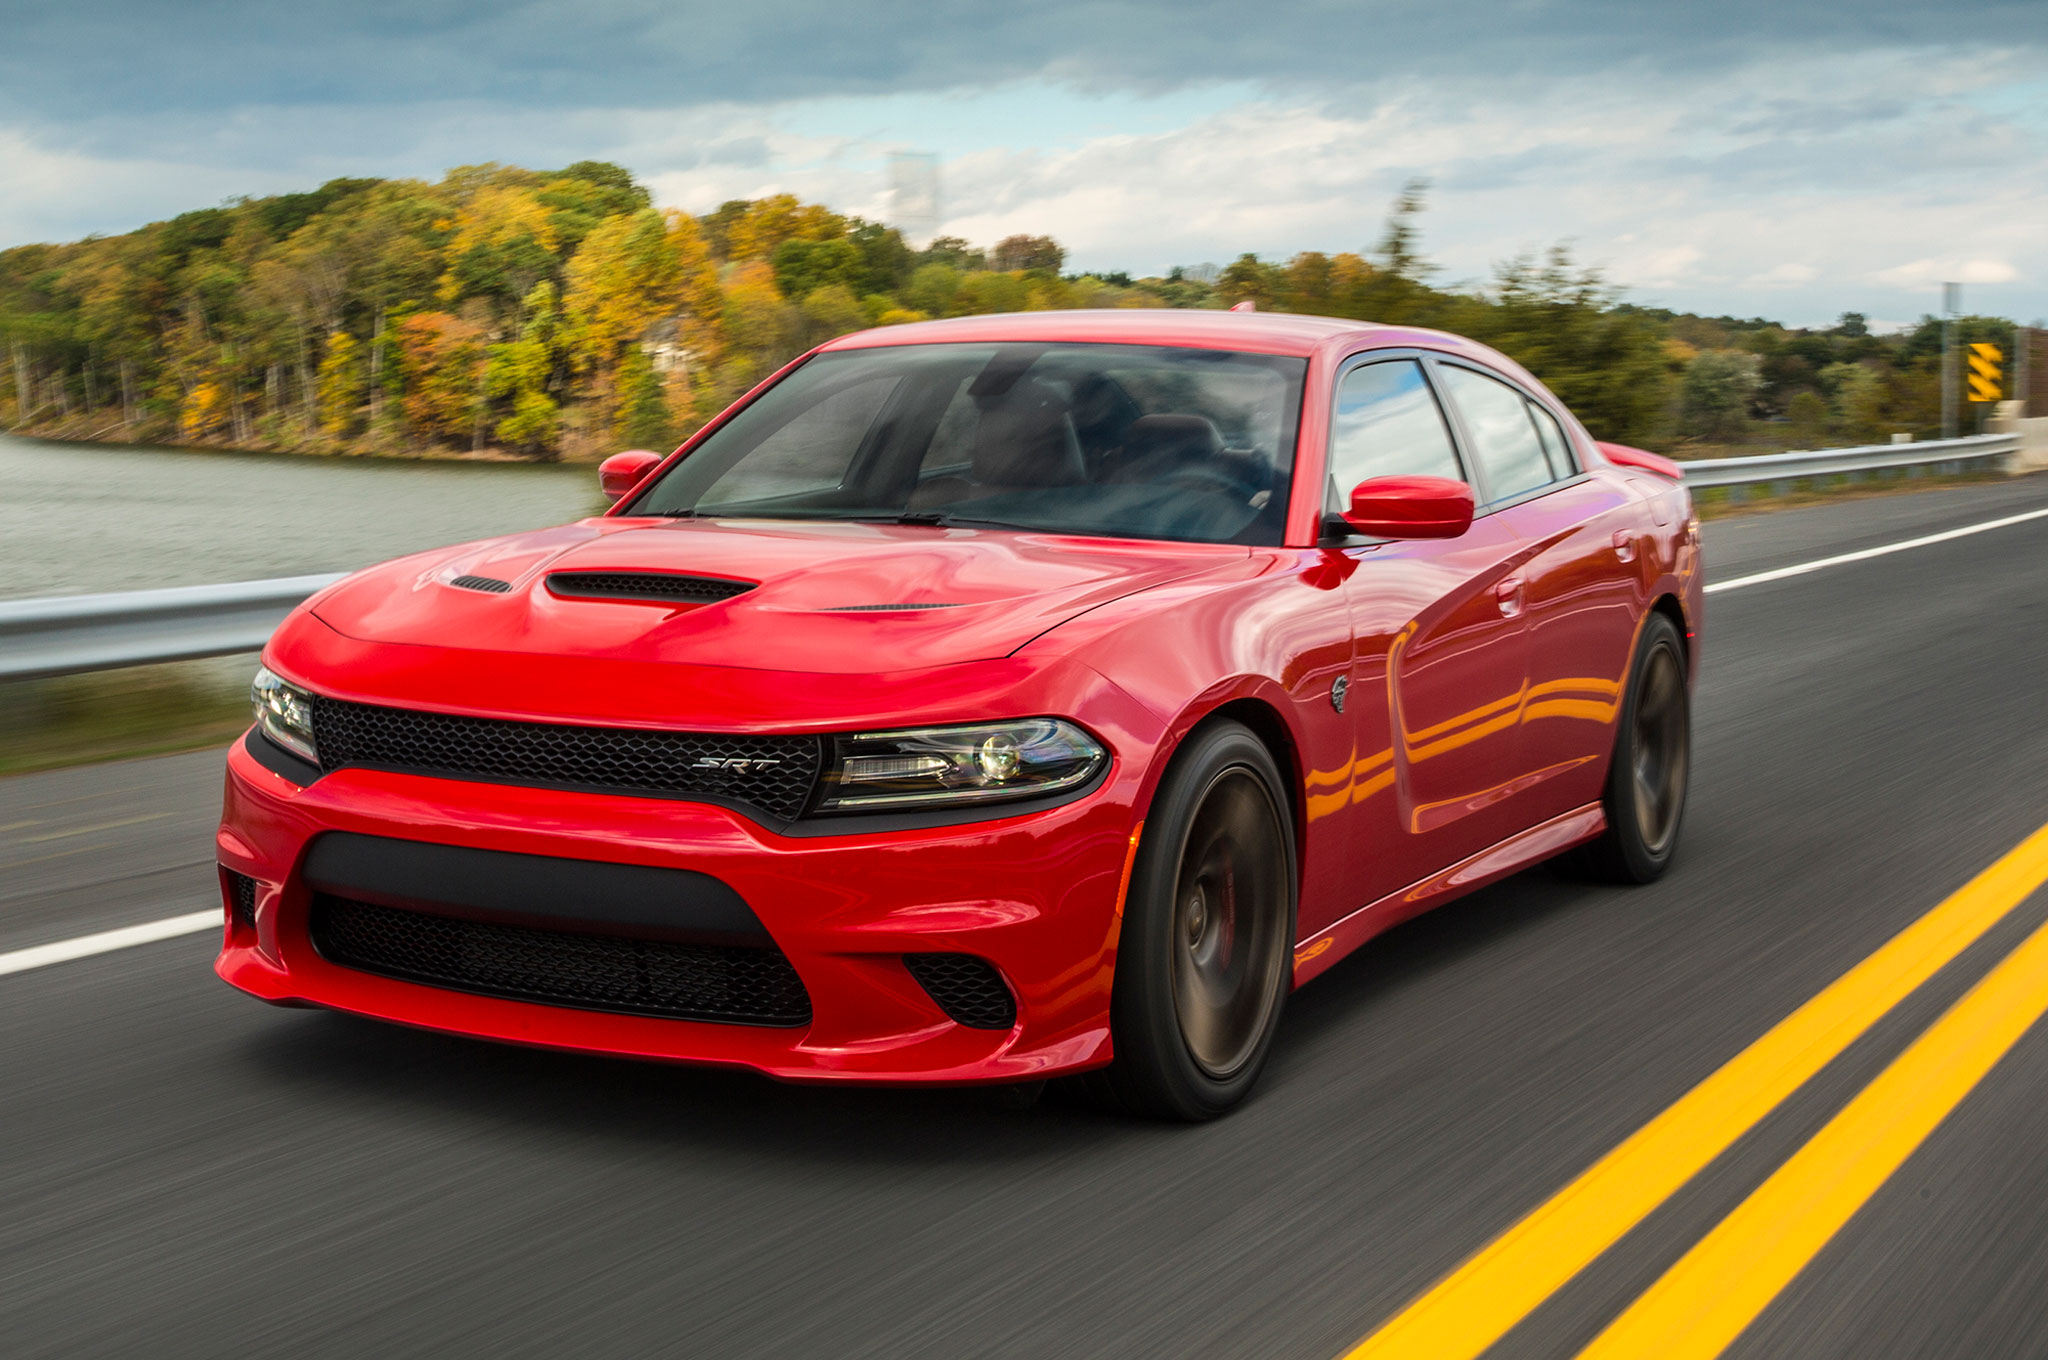 17 Charger Hellcat >> See And Hear The 2015 Dodge Charger Srt Hellcat At Top Speed